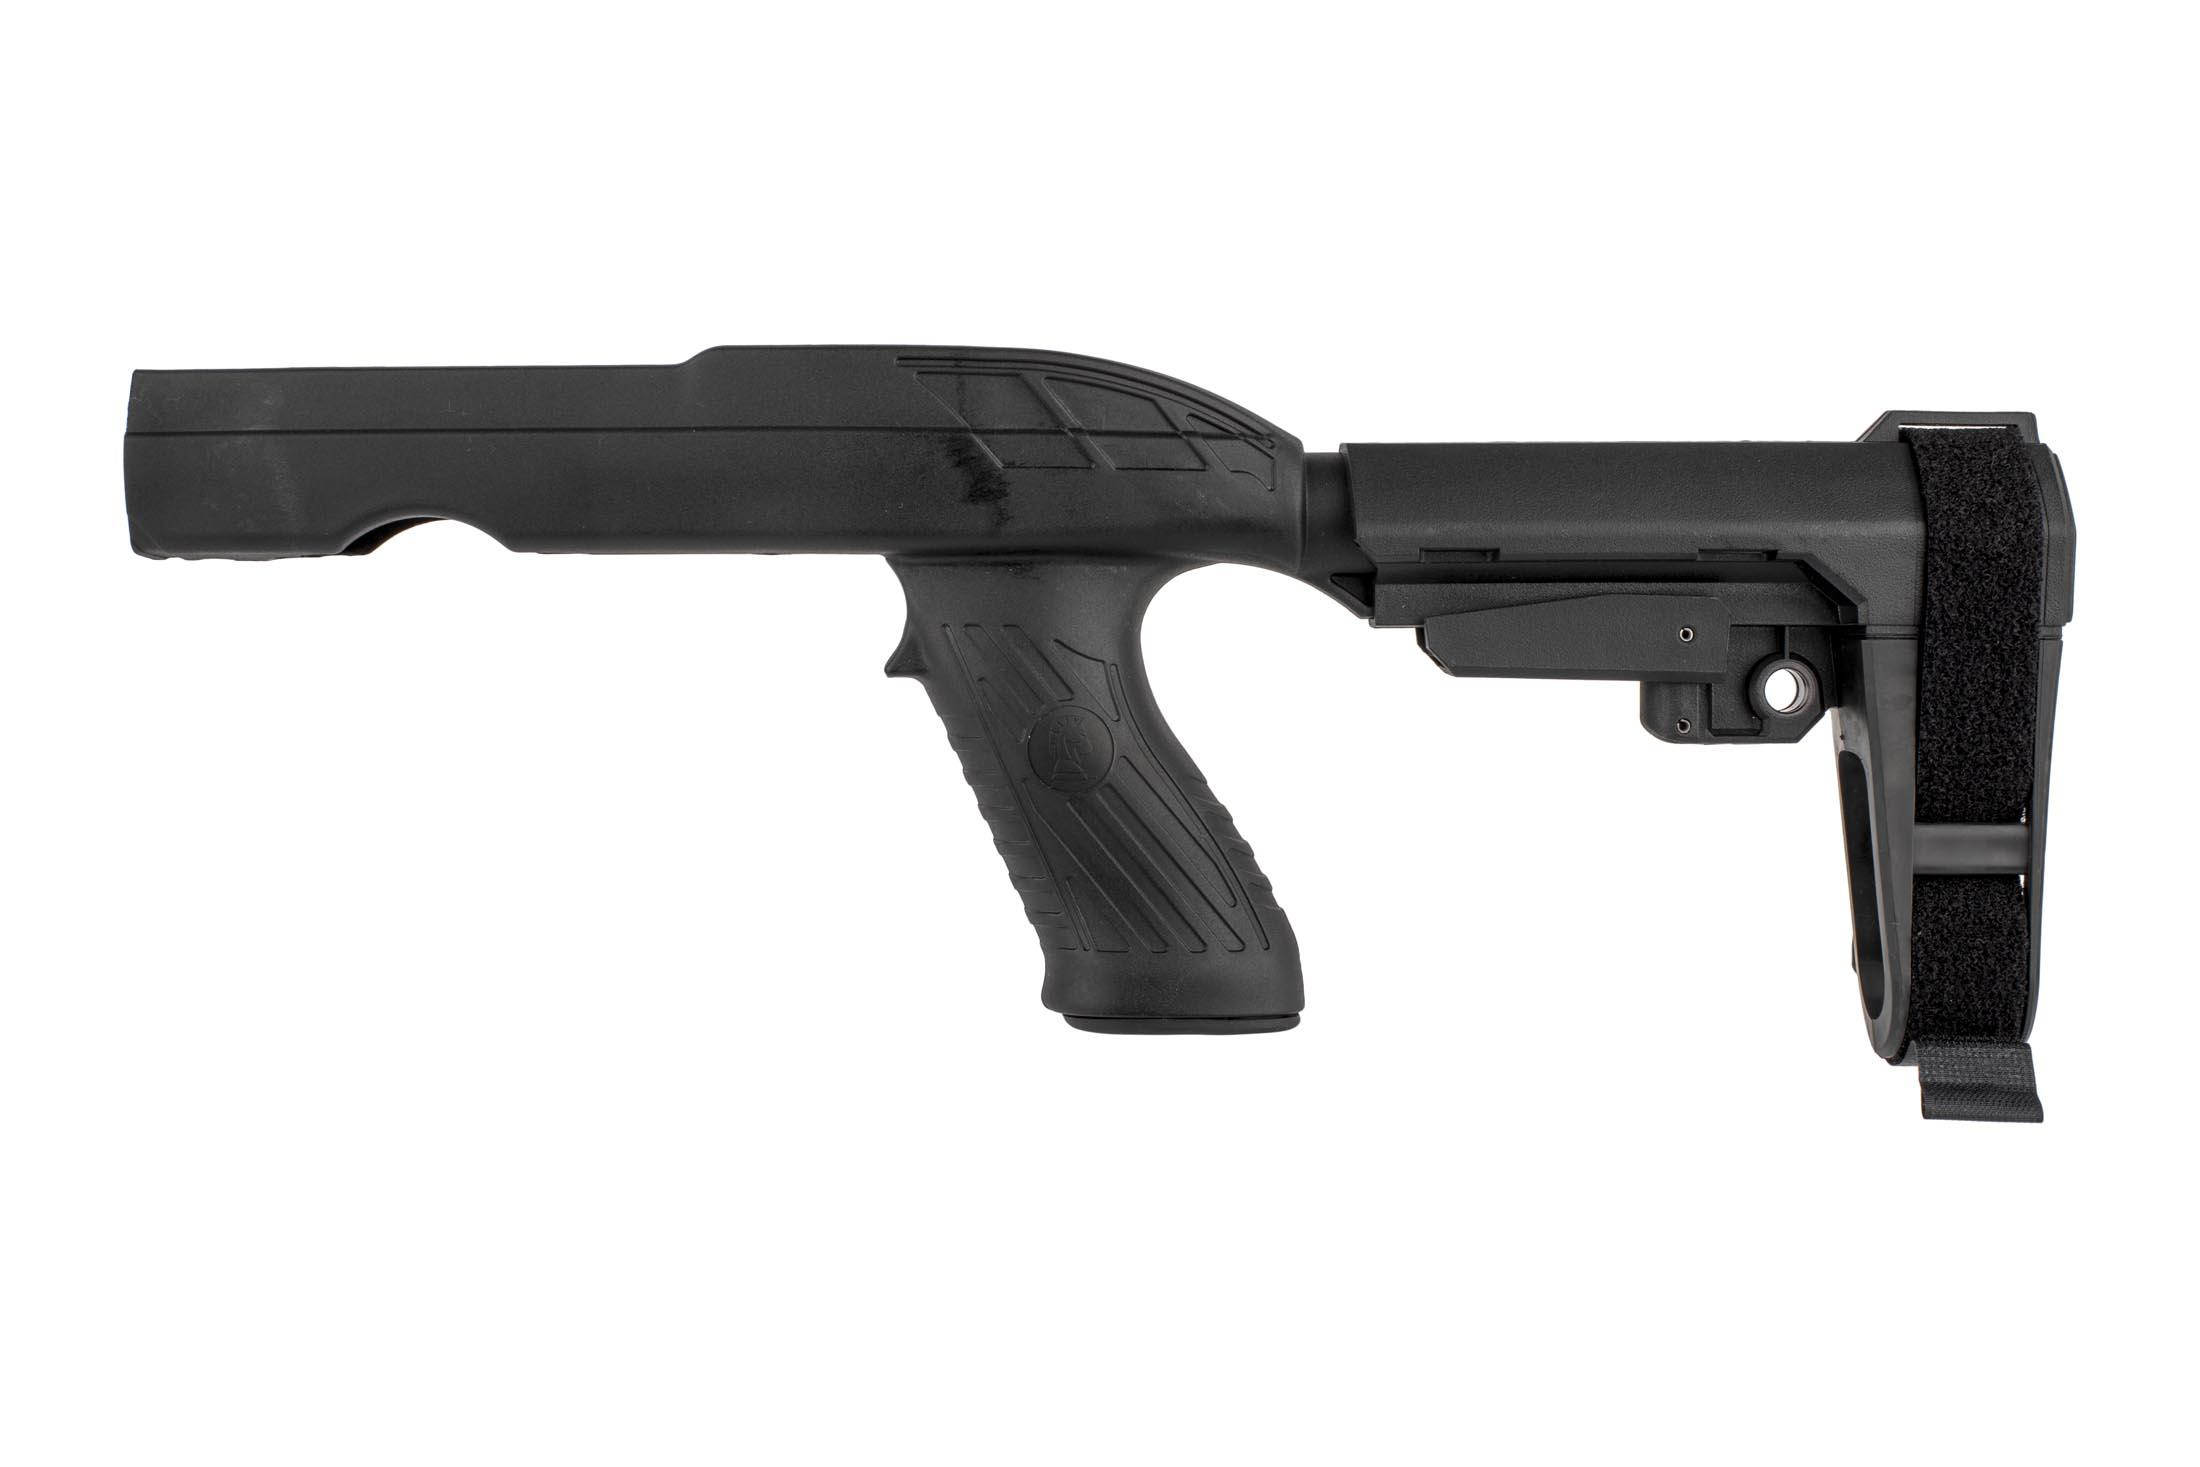 The SB Tactical 10/22 Charger TD stock assembly kit comes with the SBA3 adjustable arm brace